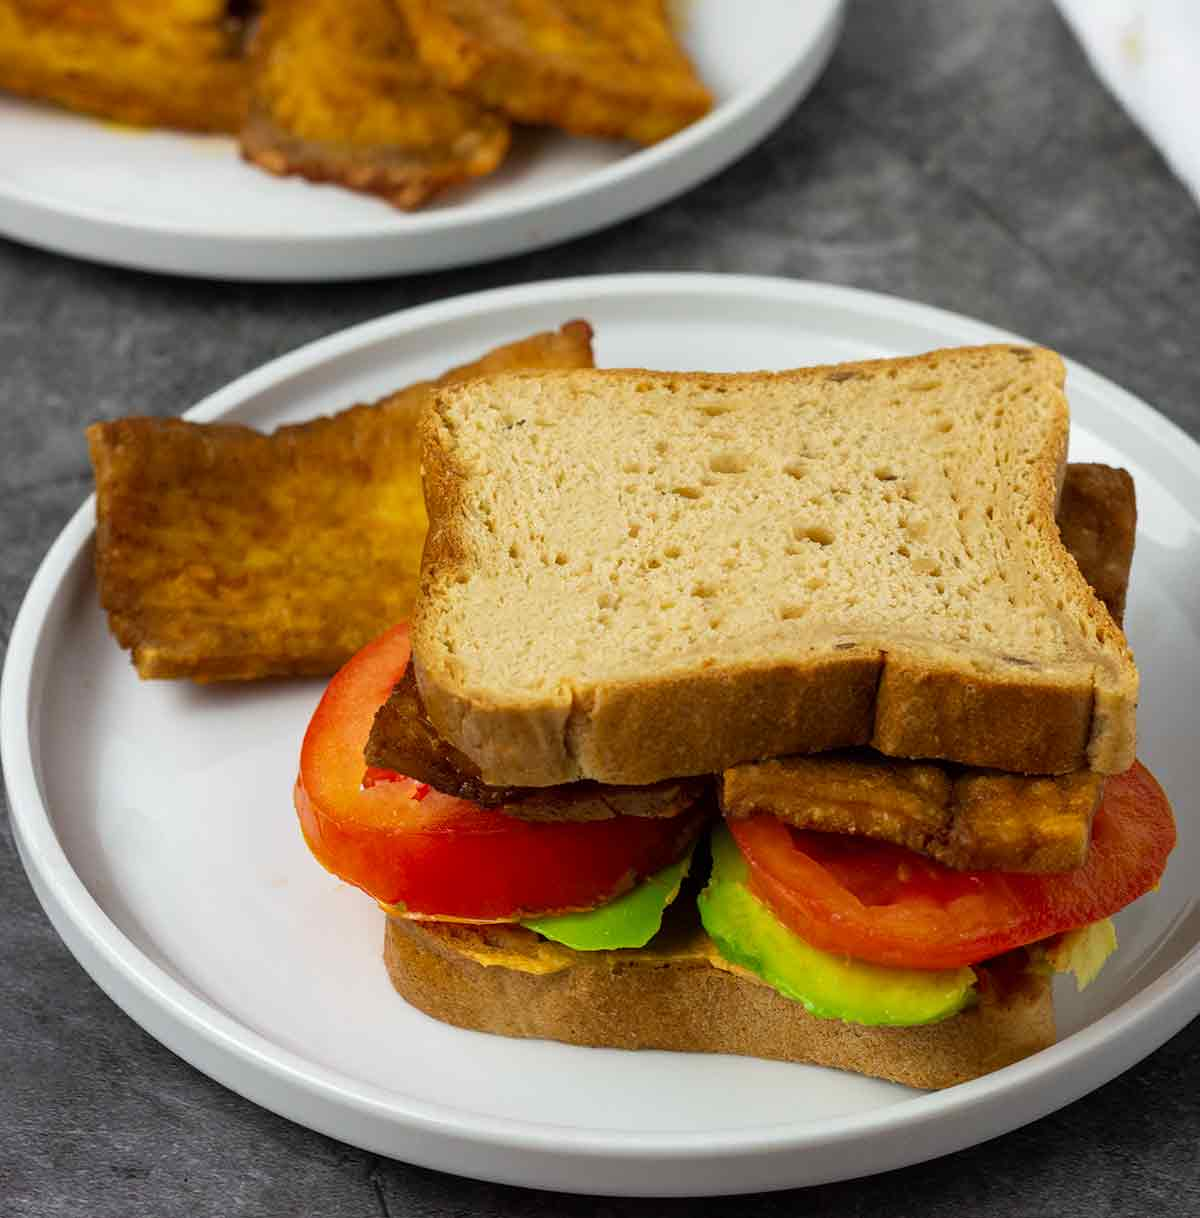 vegan tofu bacon sandwich with tomato, avocado on a white plate on a grey background